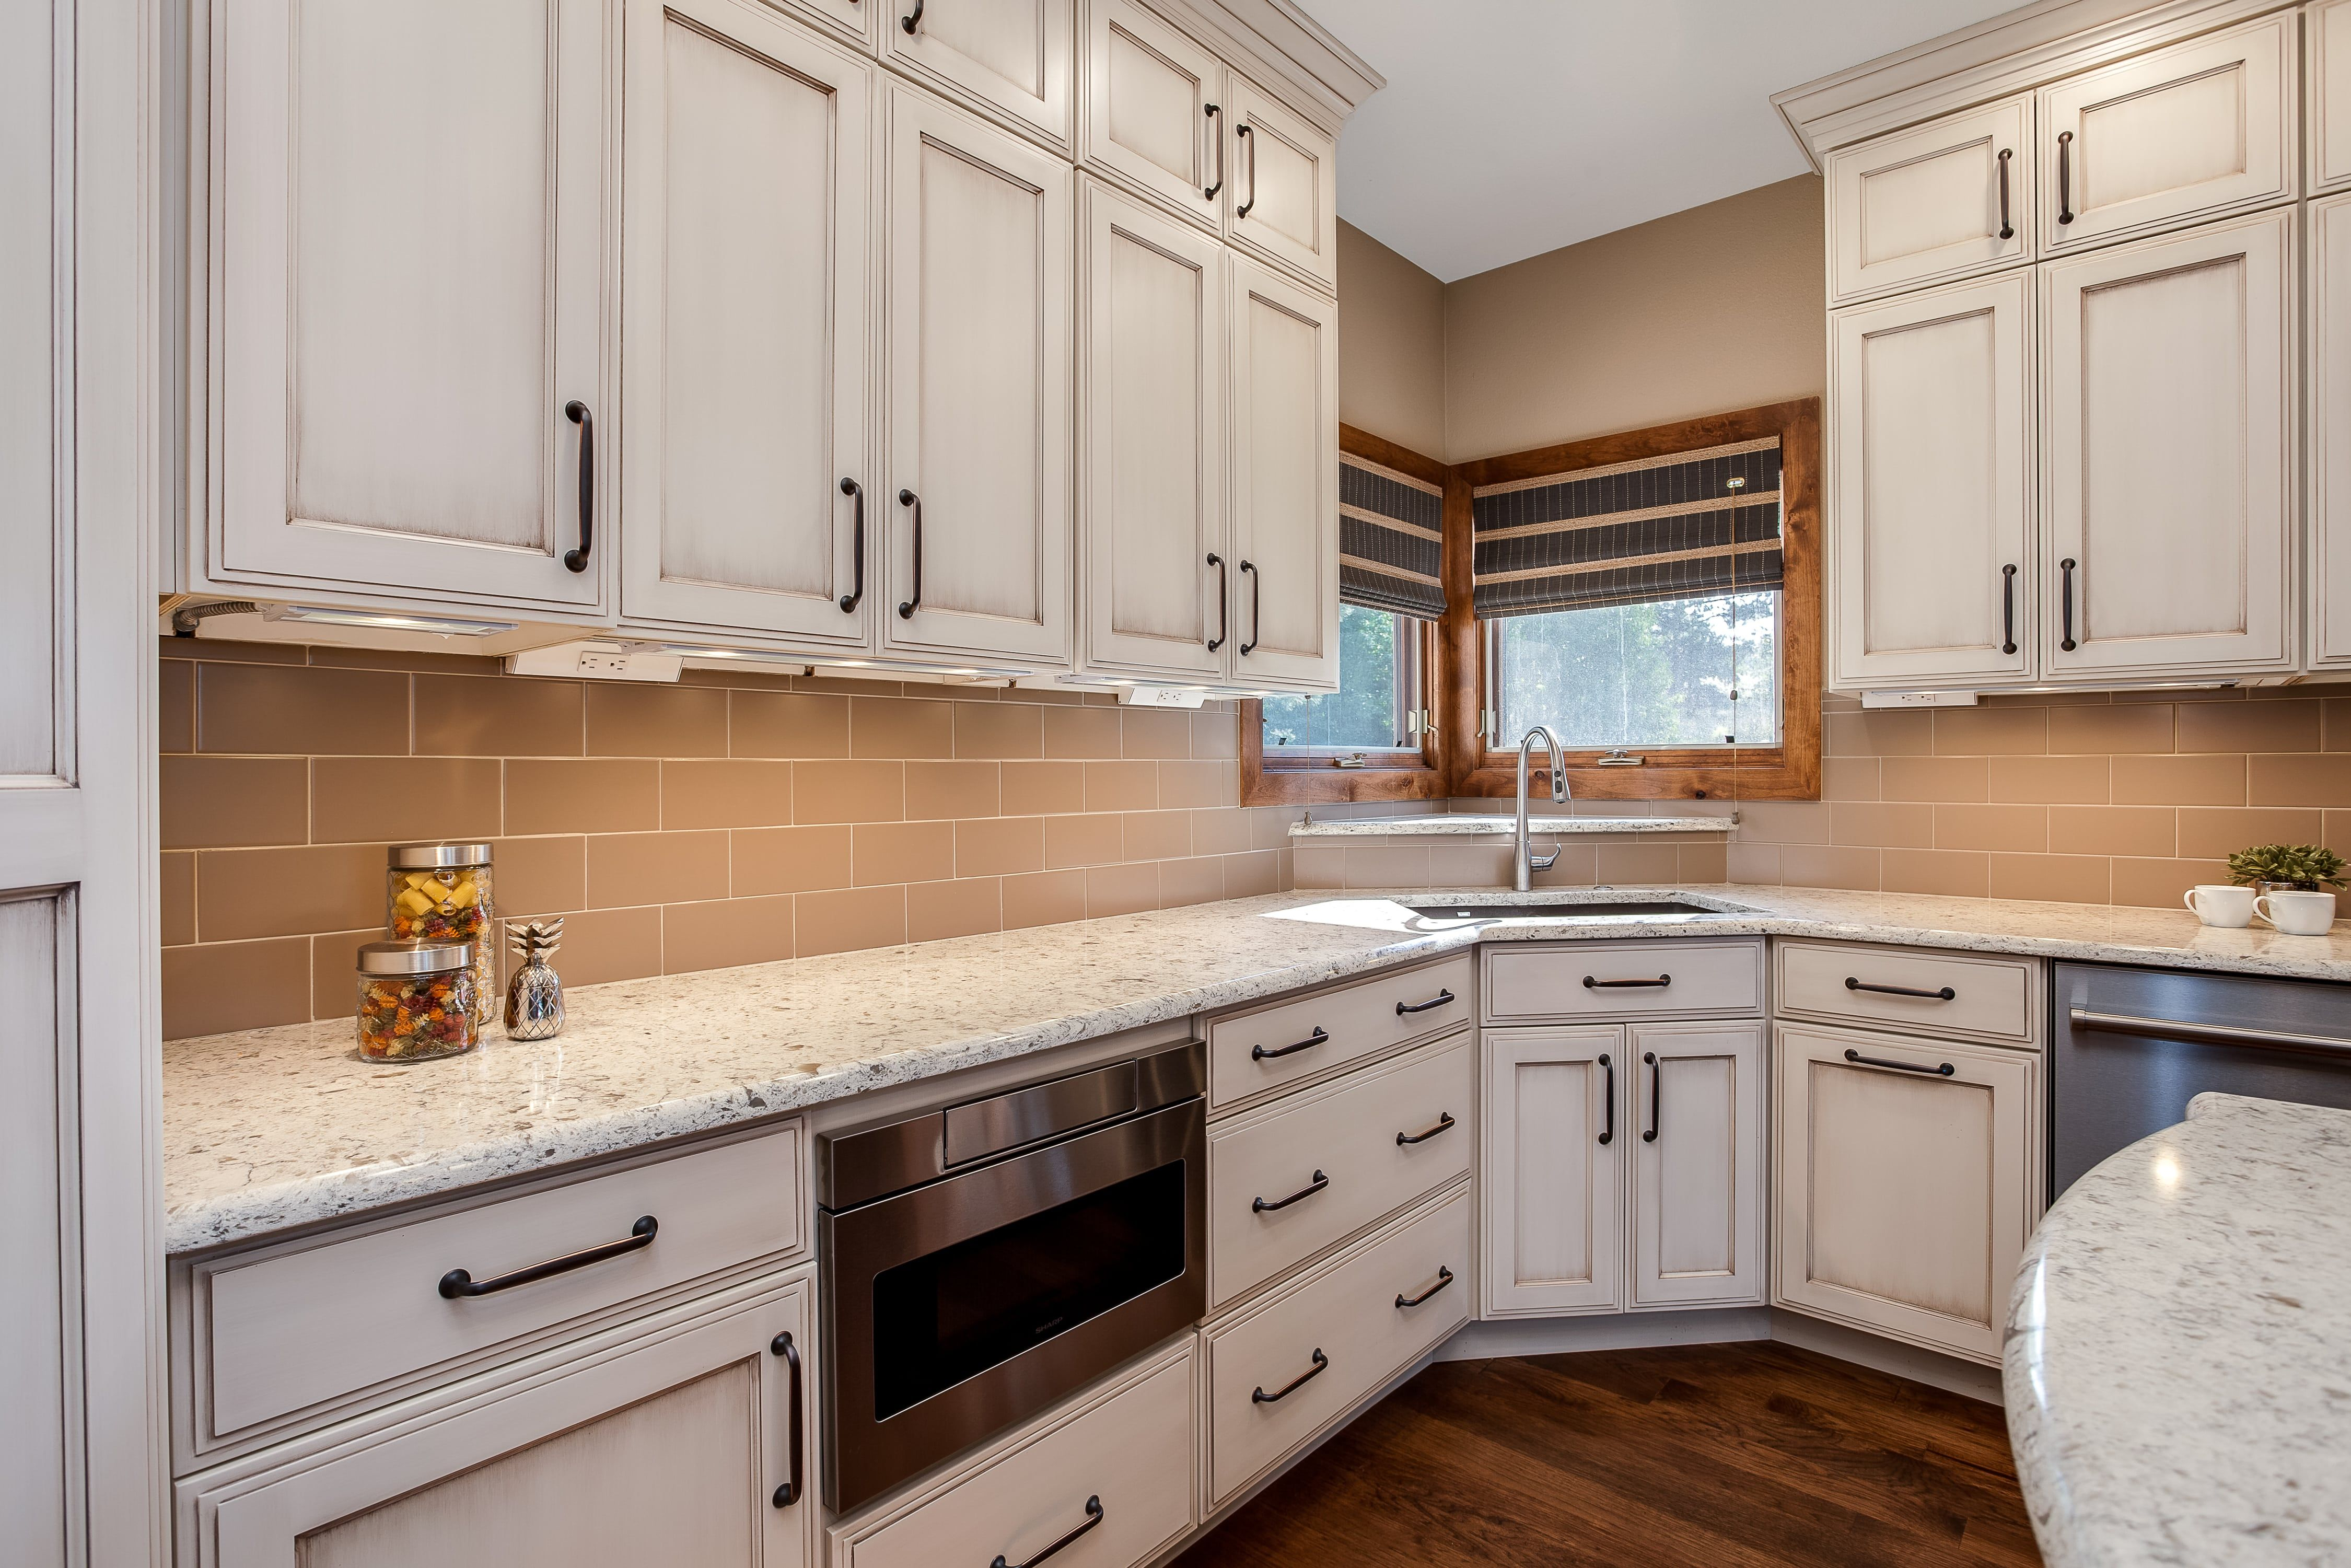 Off White Cabinets With Granite Countertop White Kitchen Design Wood Kitchen Cabinets White Kitchen